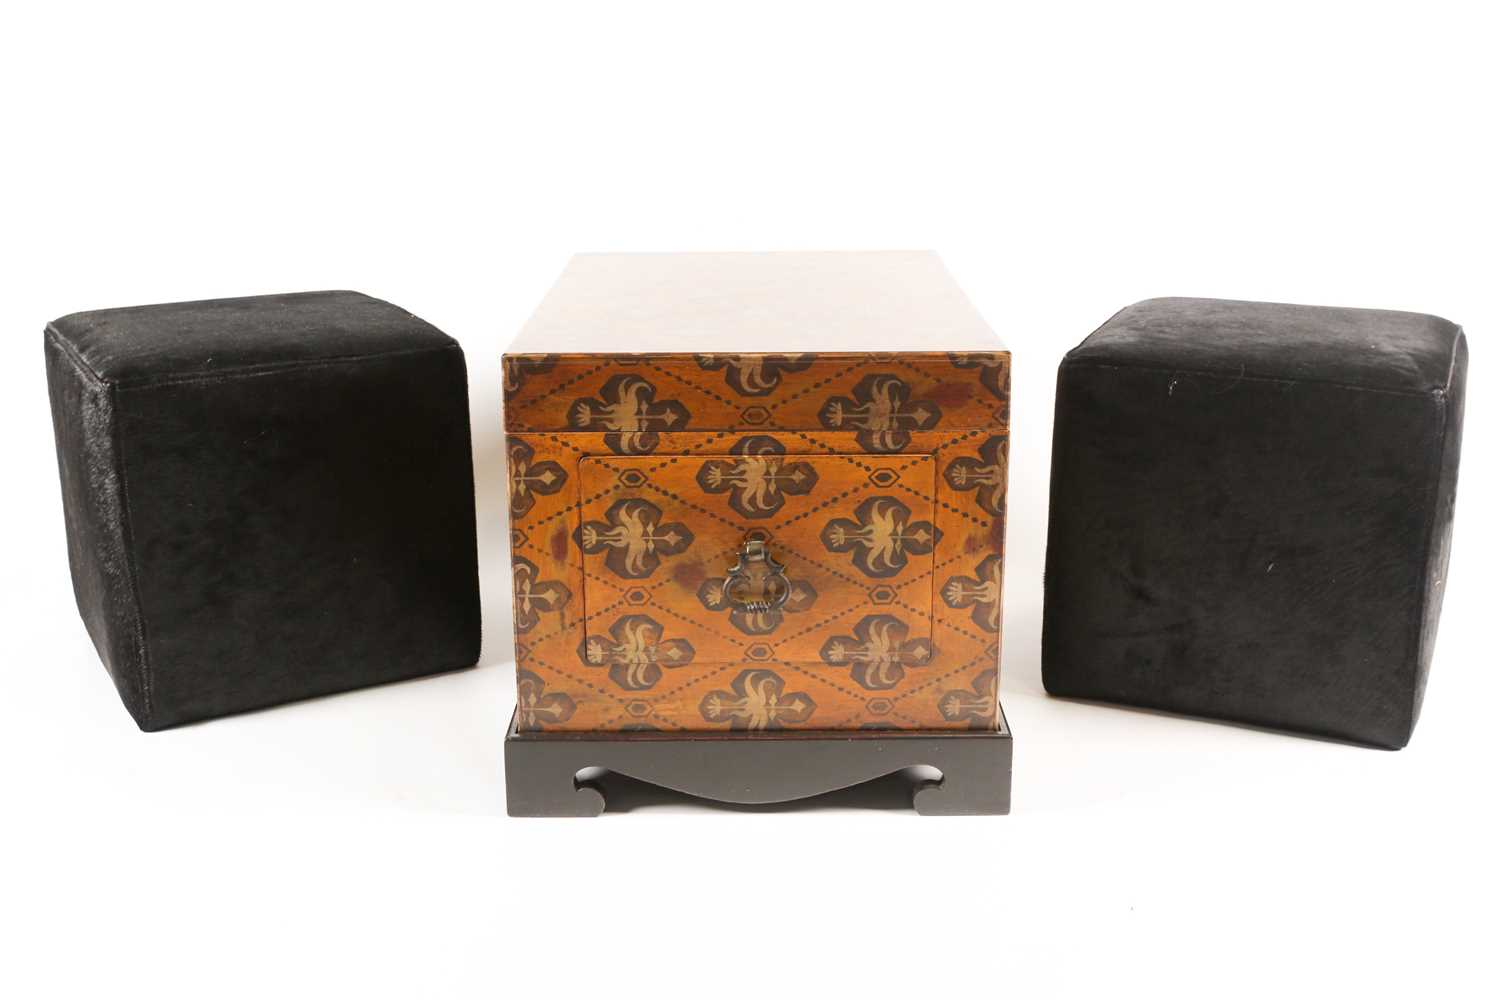 A 20th century two handled trunk with faux armorial painted decoration and a pair of brass